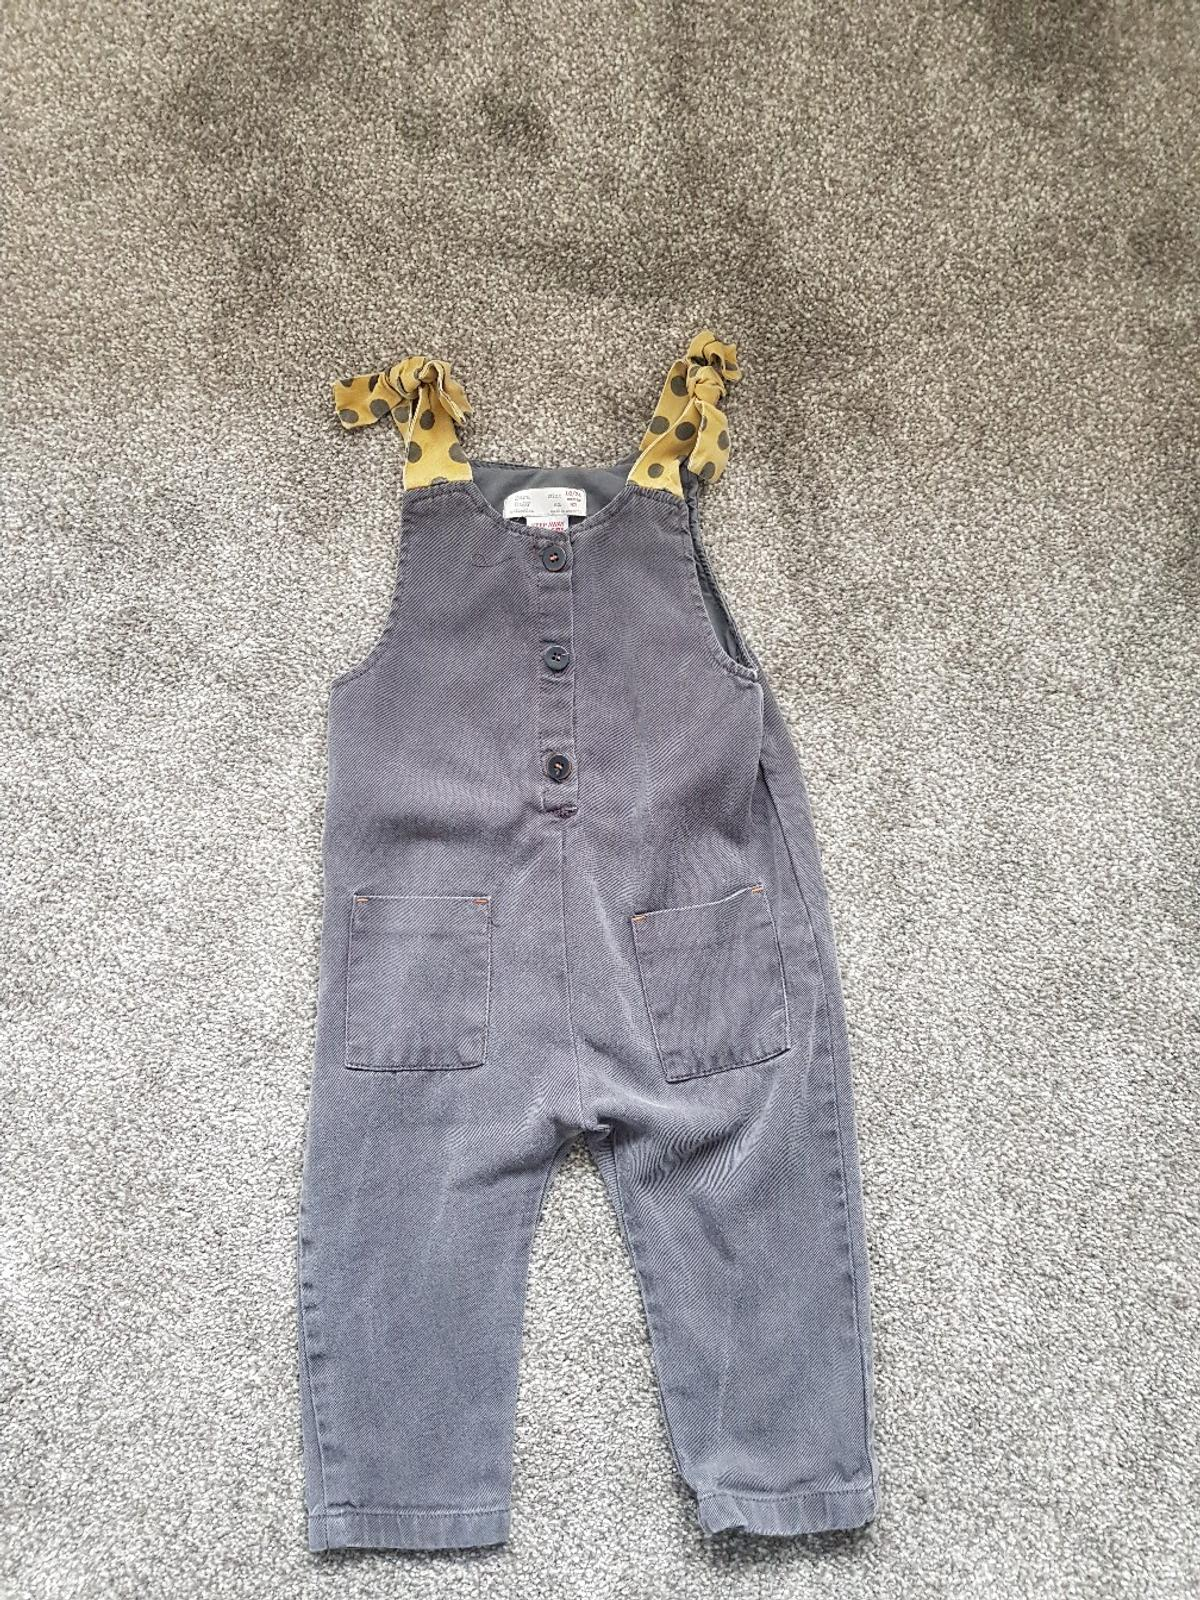 2d1f0a23 girls Zara grey dungarees with bow shoulder in B31 Birmingham for ...